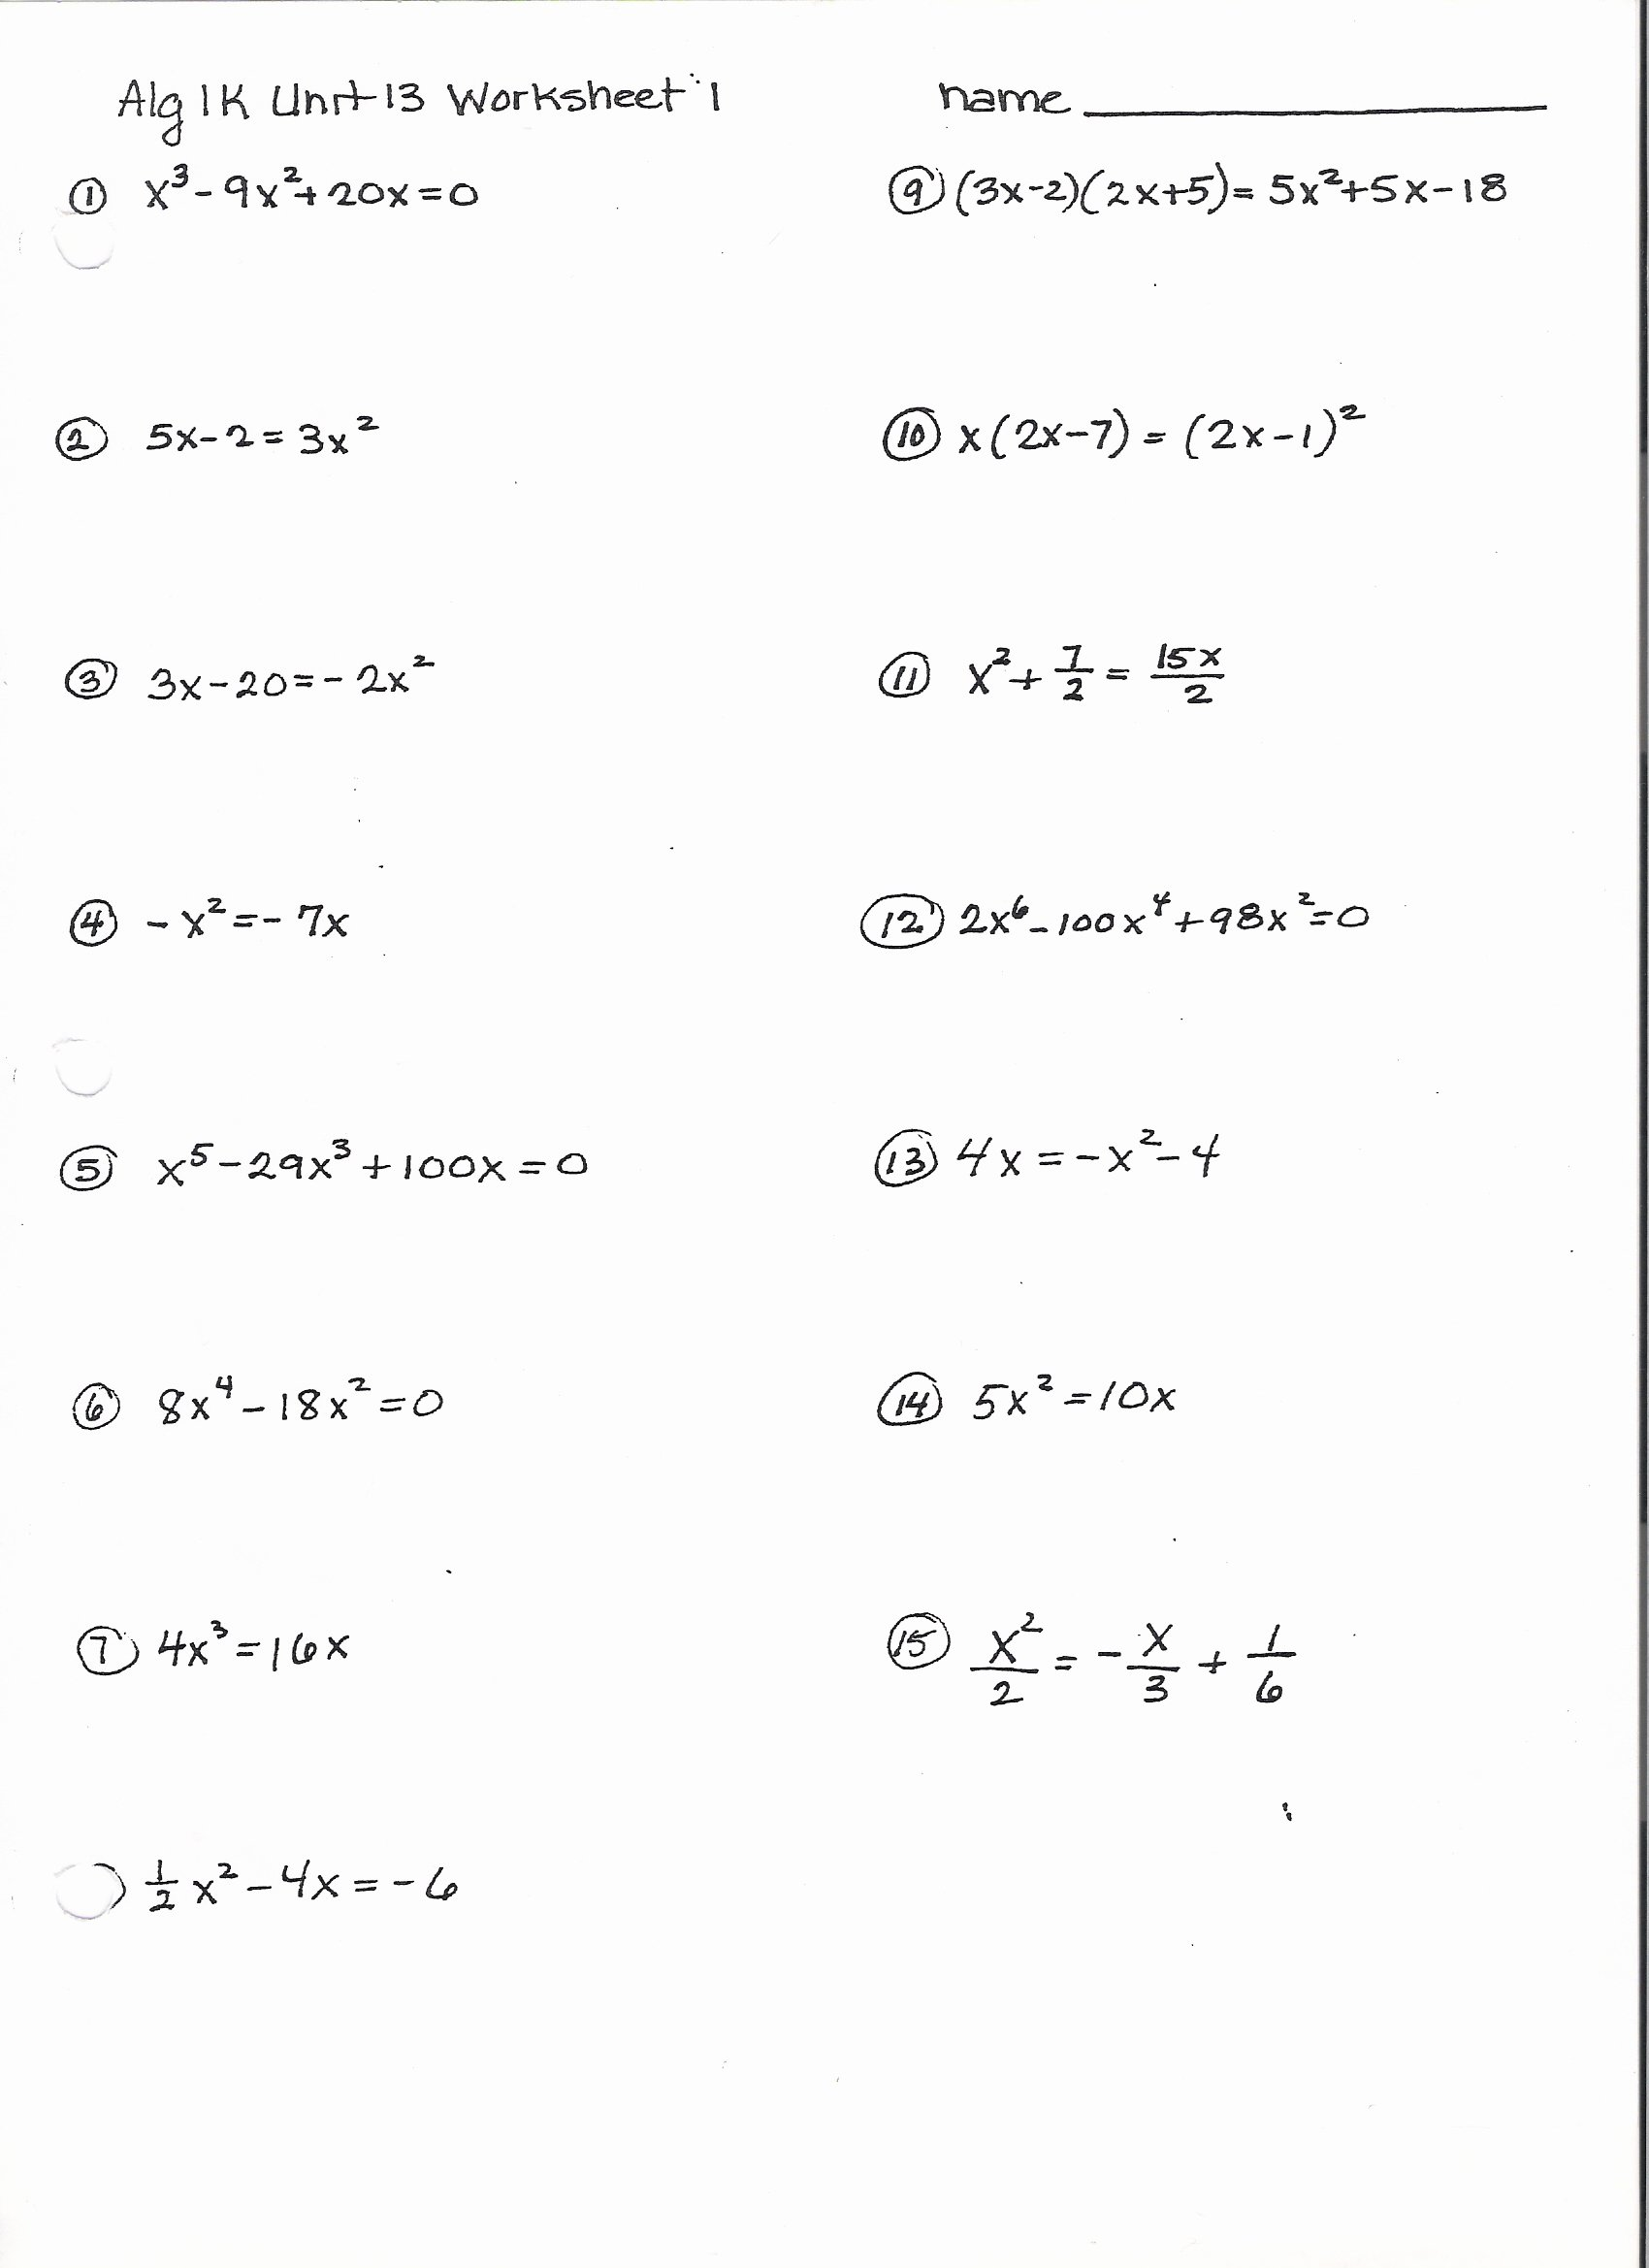 50 Factoring Worksheet With Answers